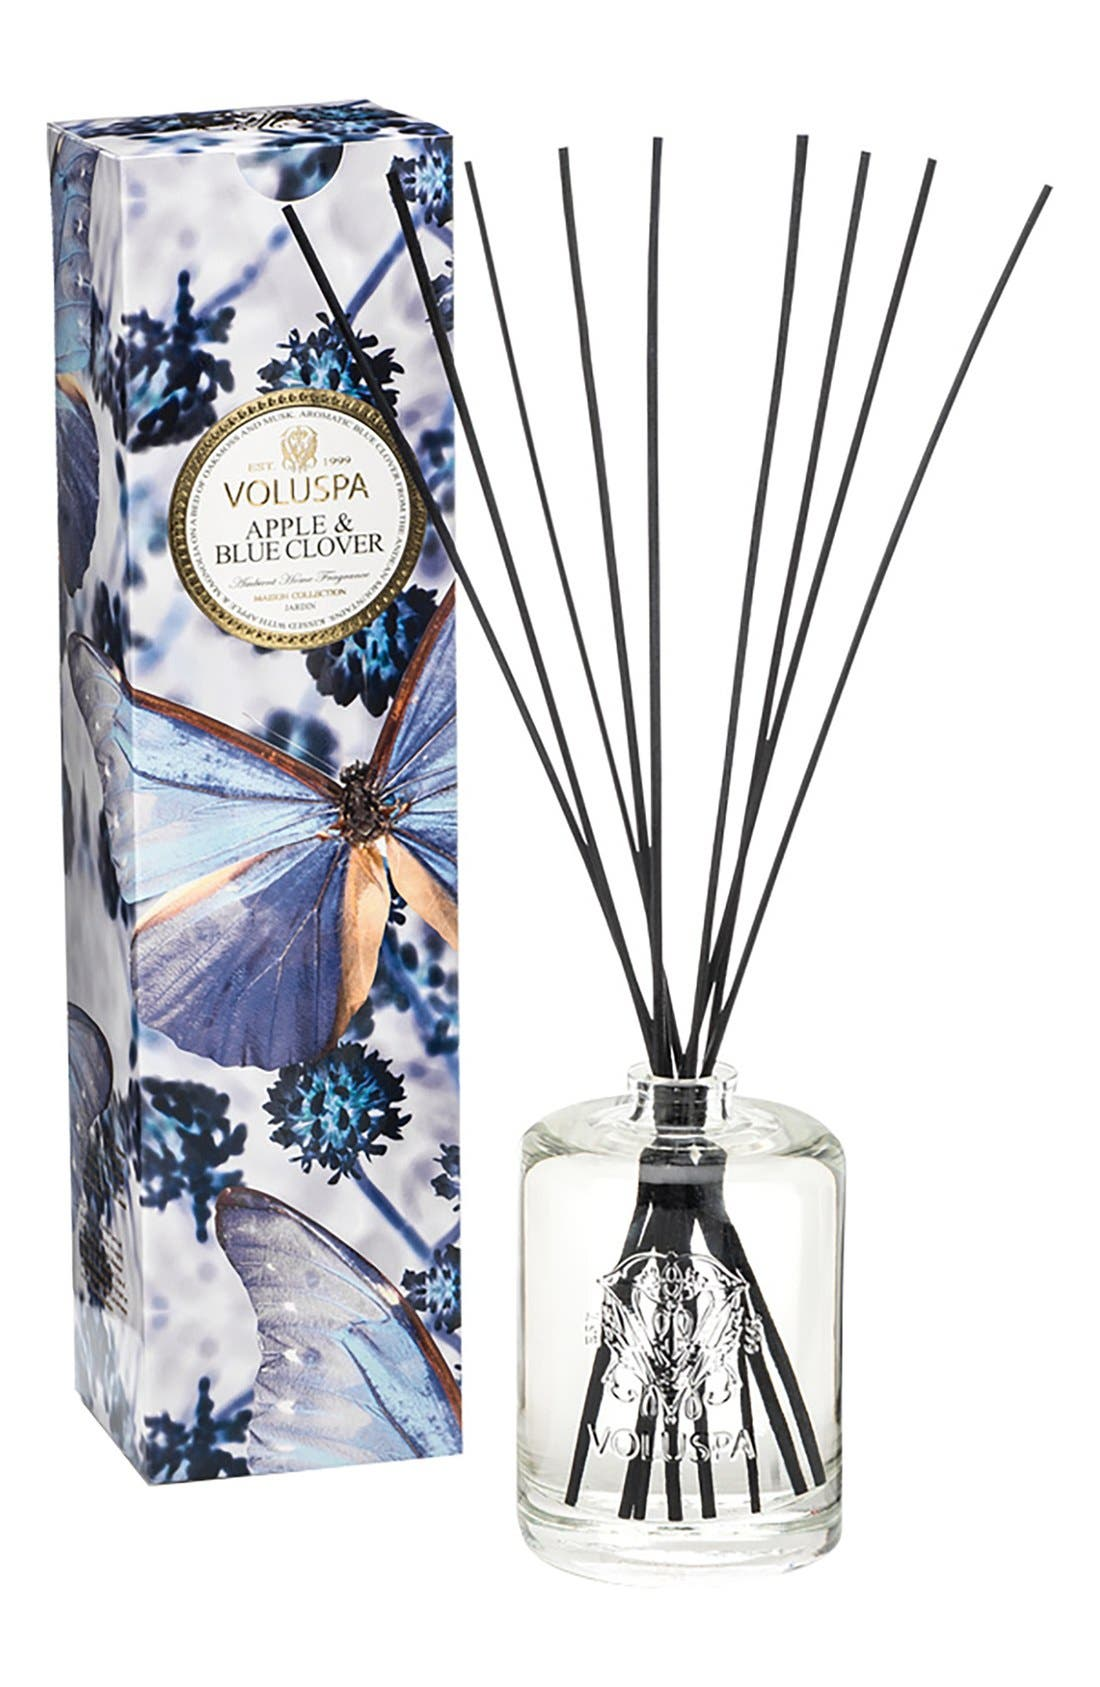 Alternate Image 1 Selected - Voluspa 'Maison Jardin - Apple & Blue Clover' Home Ambiance Diffuser